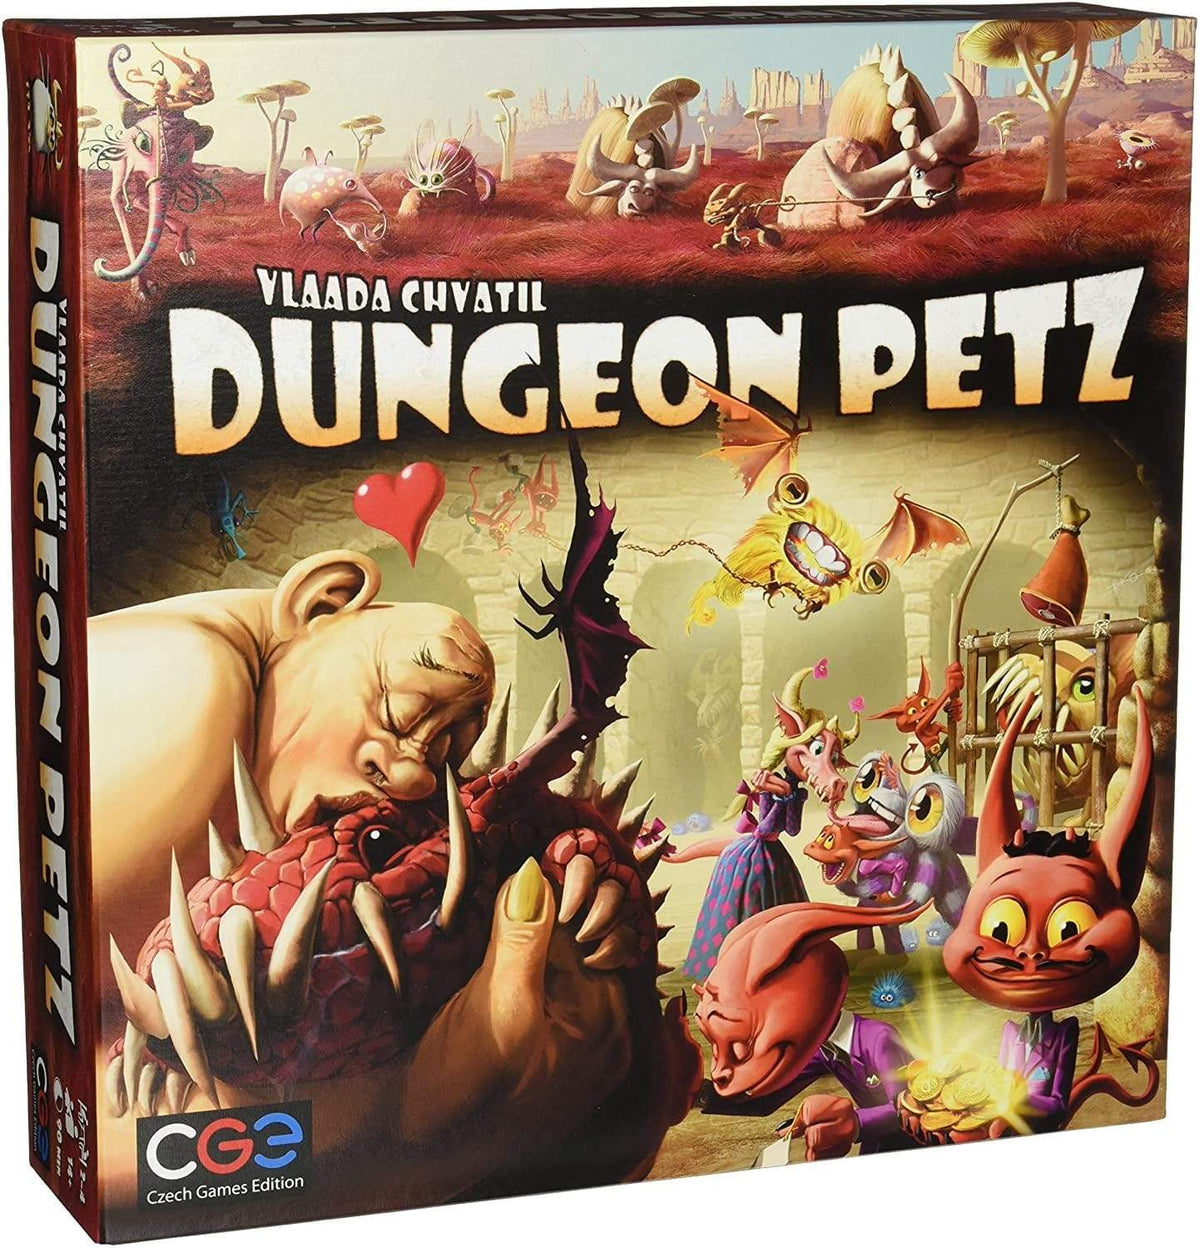 Dungeon Petz Alliance Games Board Games